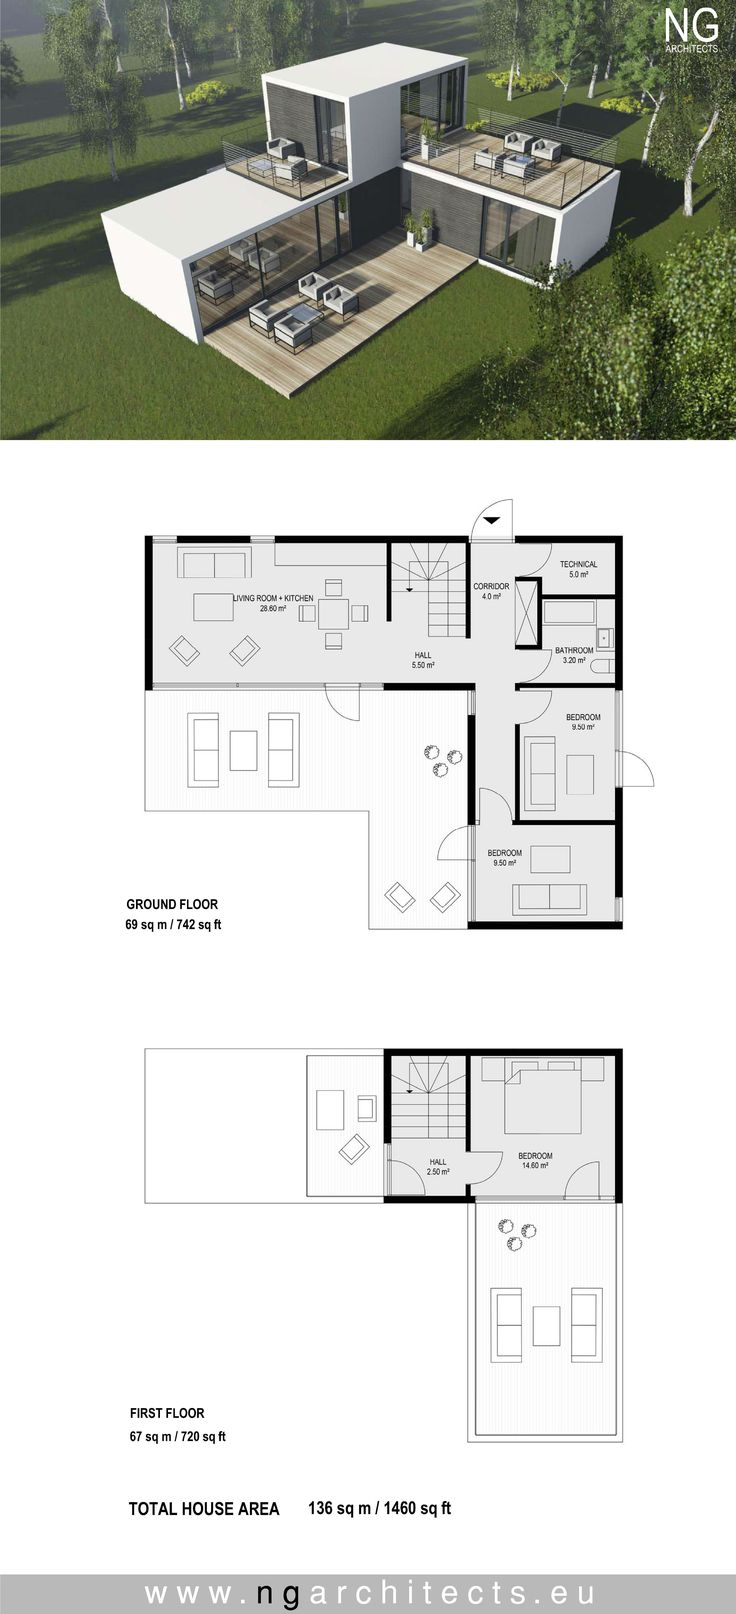 modular house plan villa Spirit designed by